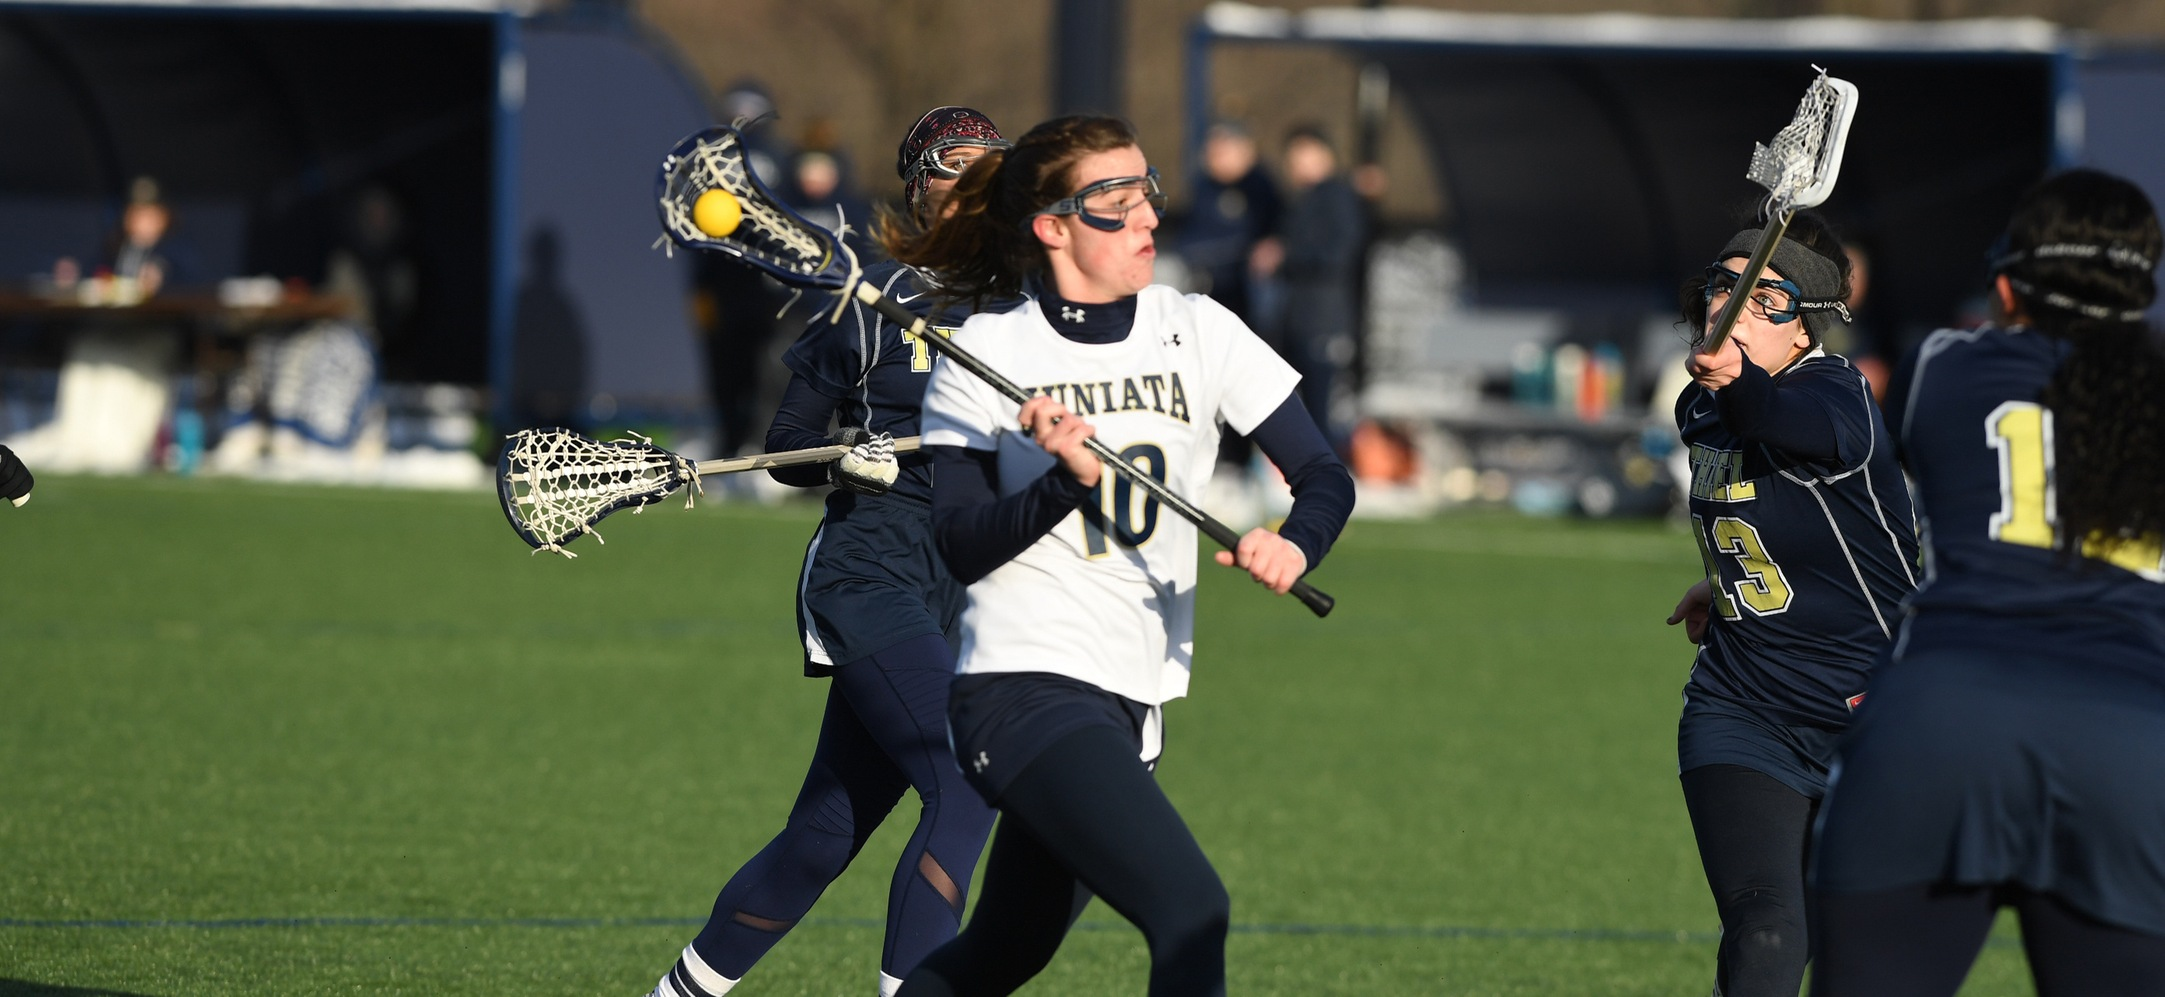 Natalie Gibson amassed two goals, a ground ball, six draw controls and two caused turnovers against Moravian.